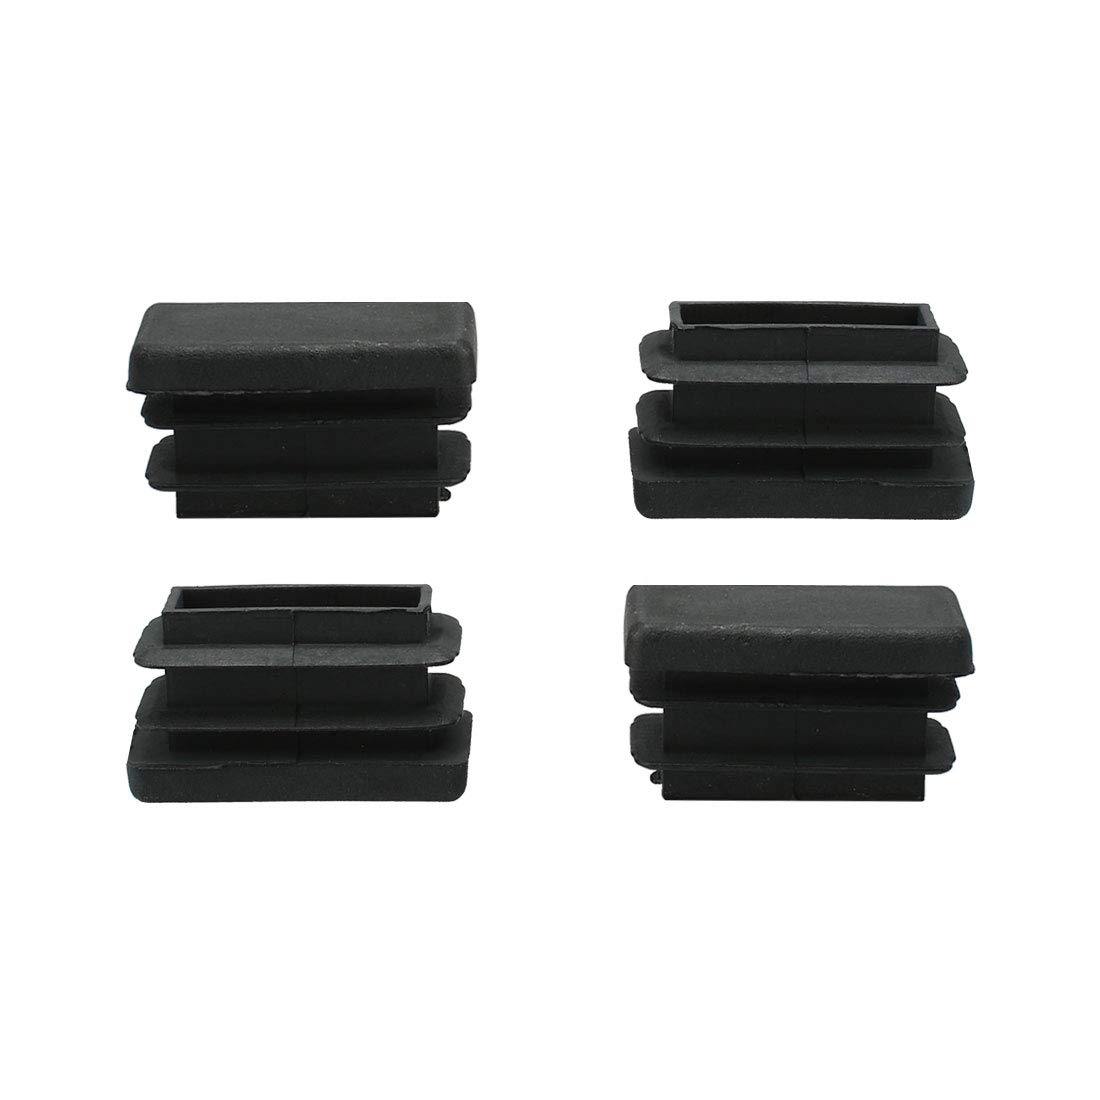 uxcell 4pcs 15 x 30mm Plastic Rectangle Ribbed Tube Inserts End Cover Cap, Indoor and Outdoor Furniture Chair Table Desk Feet Floor Protector